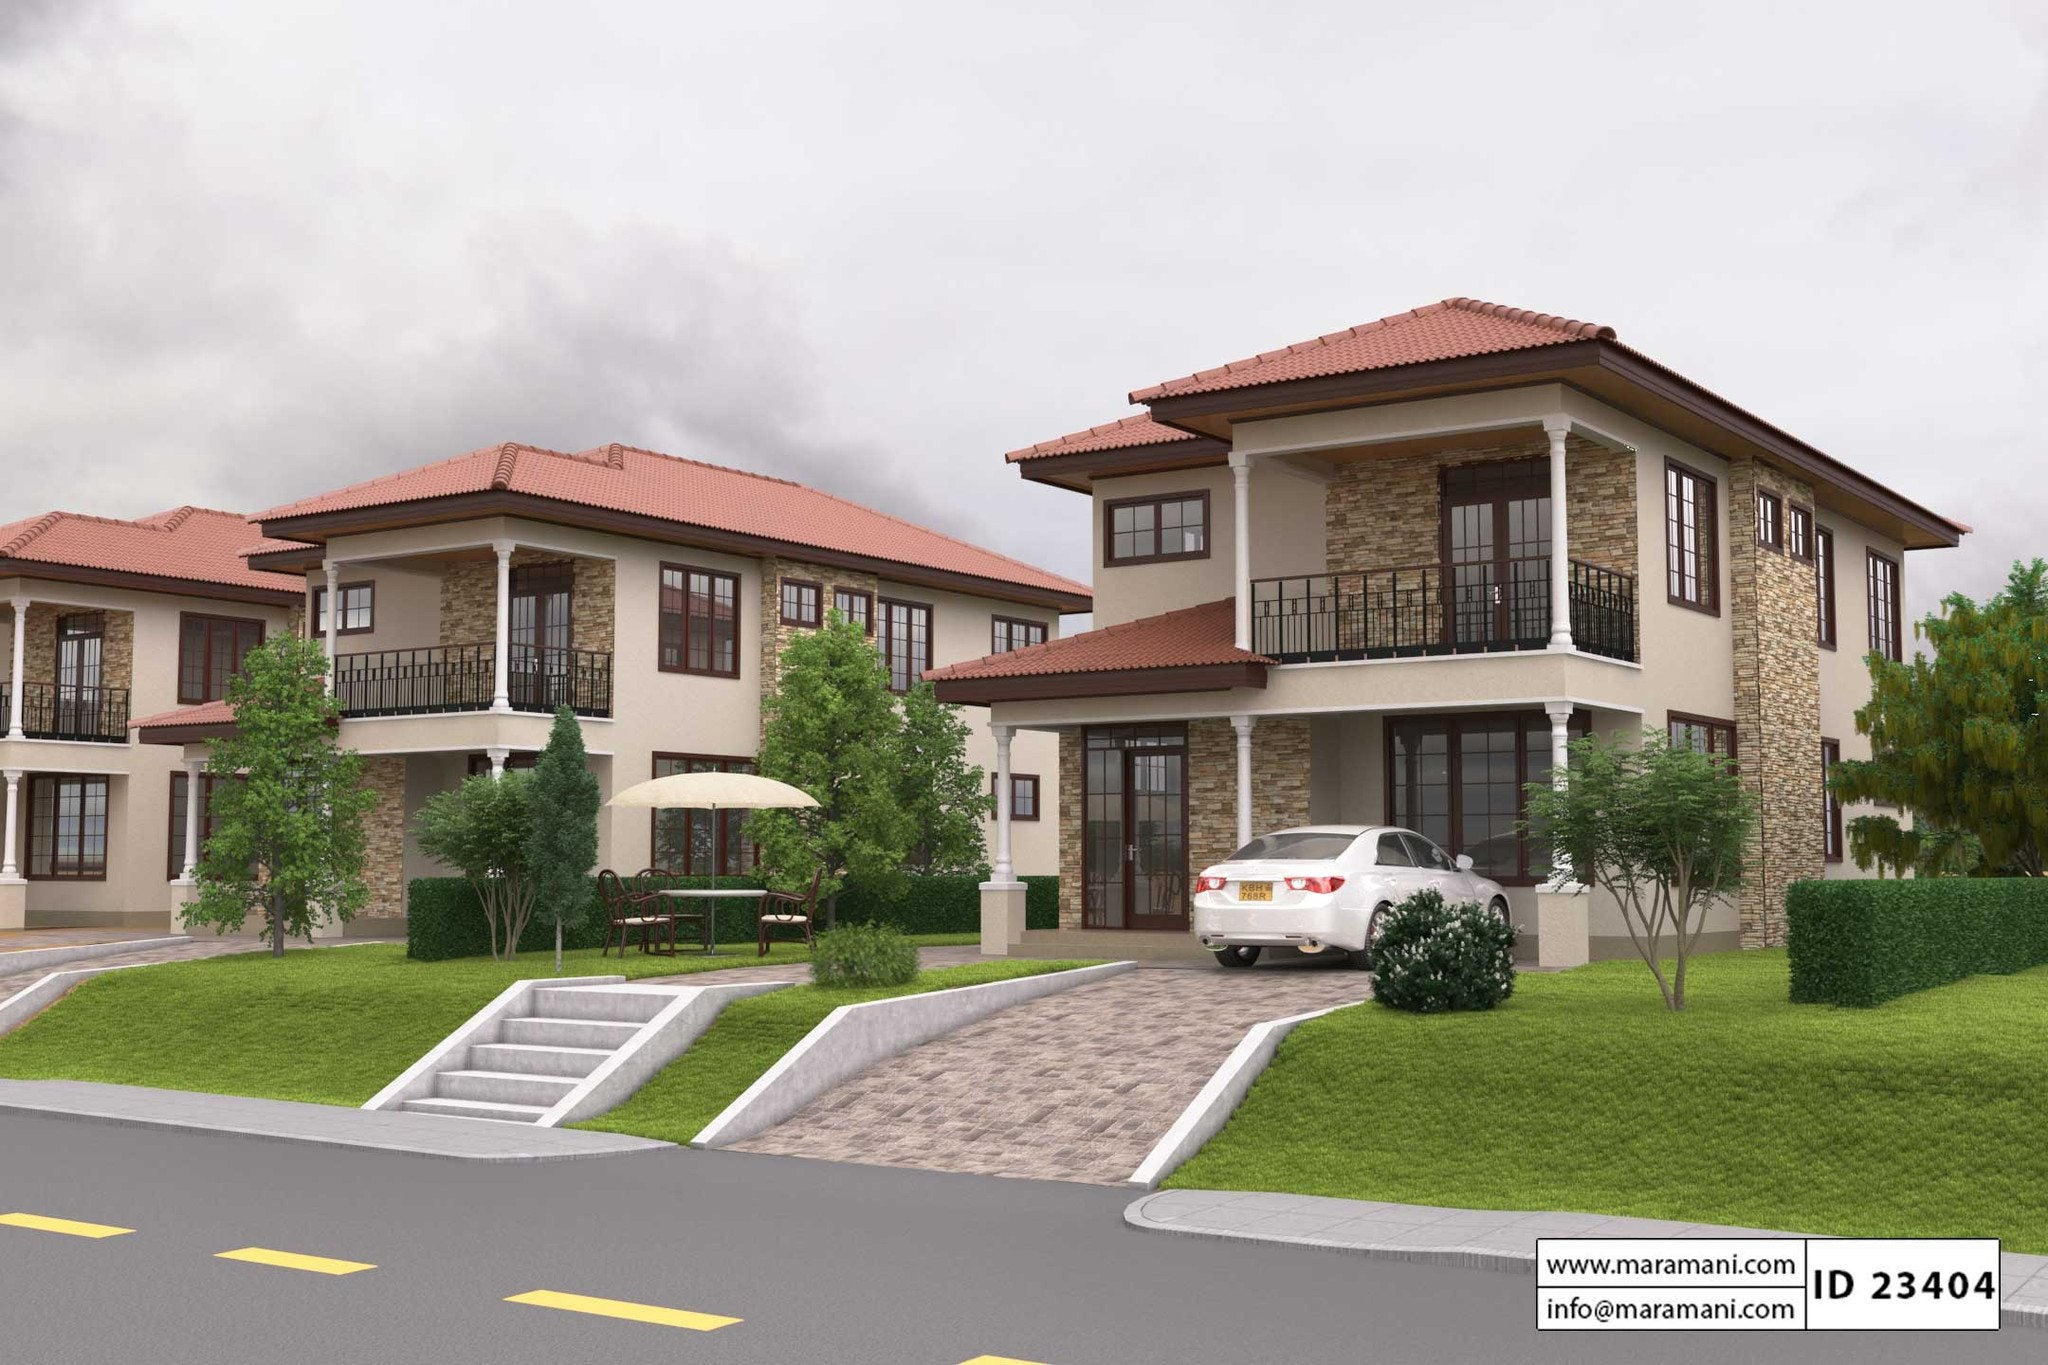 Three Bedroom House Plan - ID 23404 - Floor Plans by Maramani